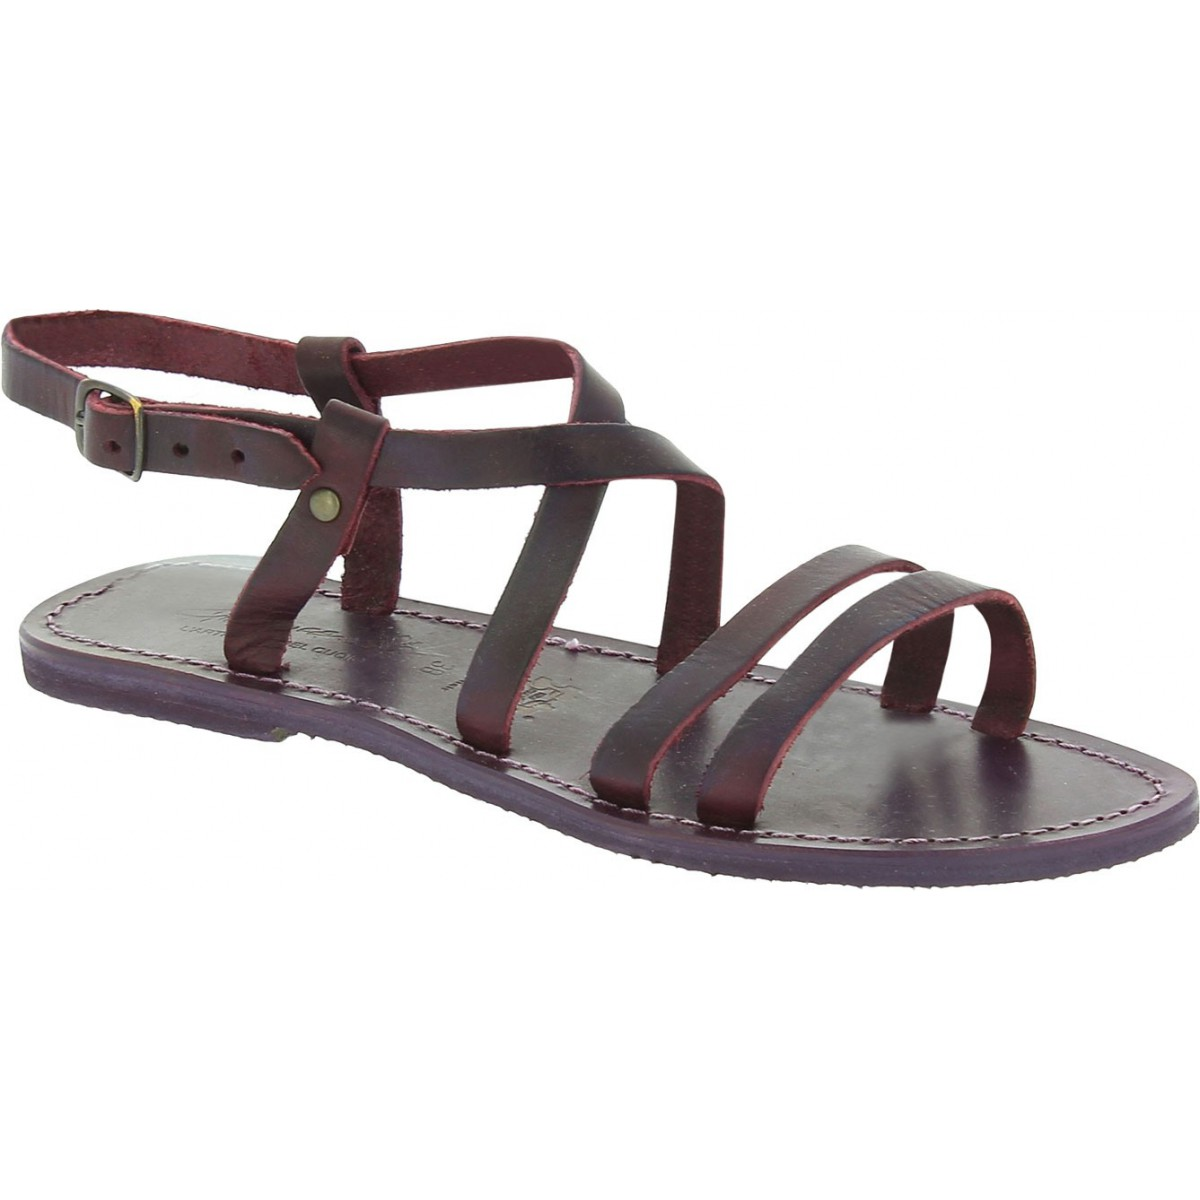 b150a506103 Women s violet leather sandals handmade in Italy. Loading zoom